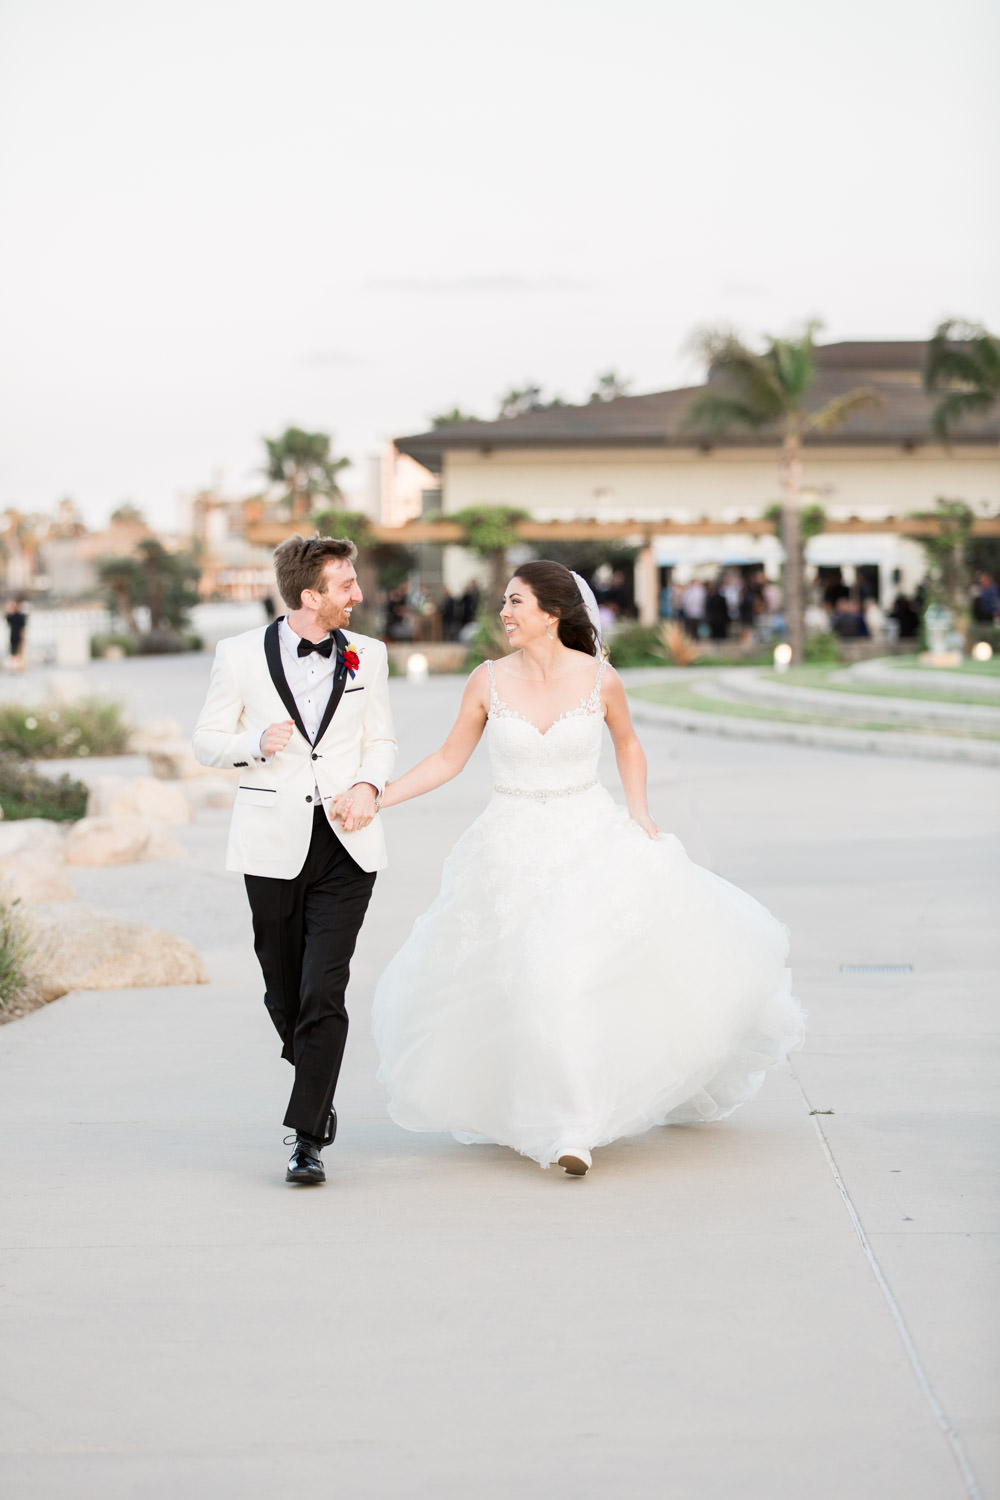 Bride and groom running together in a portrait at the Coronado Community Center, Cavin Elizabeth Photography